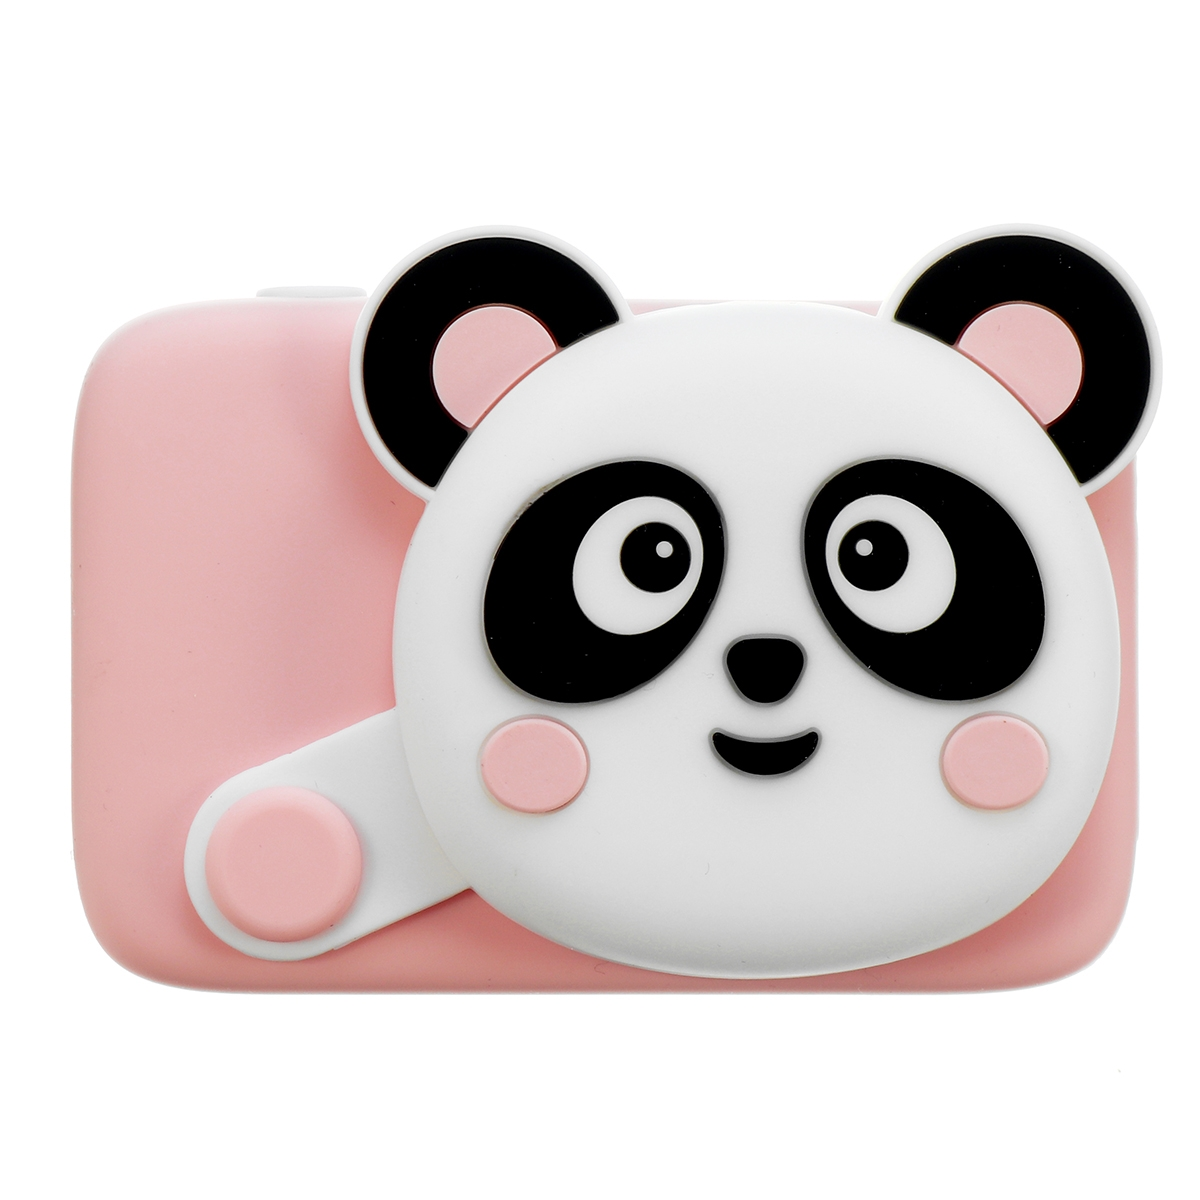 Creative Panda Cartoon Digital Camera Baby Photography Training Educational Toys with 16/32G TF Card for Kids Gift